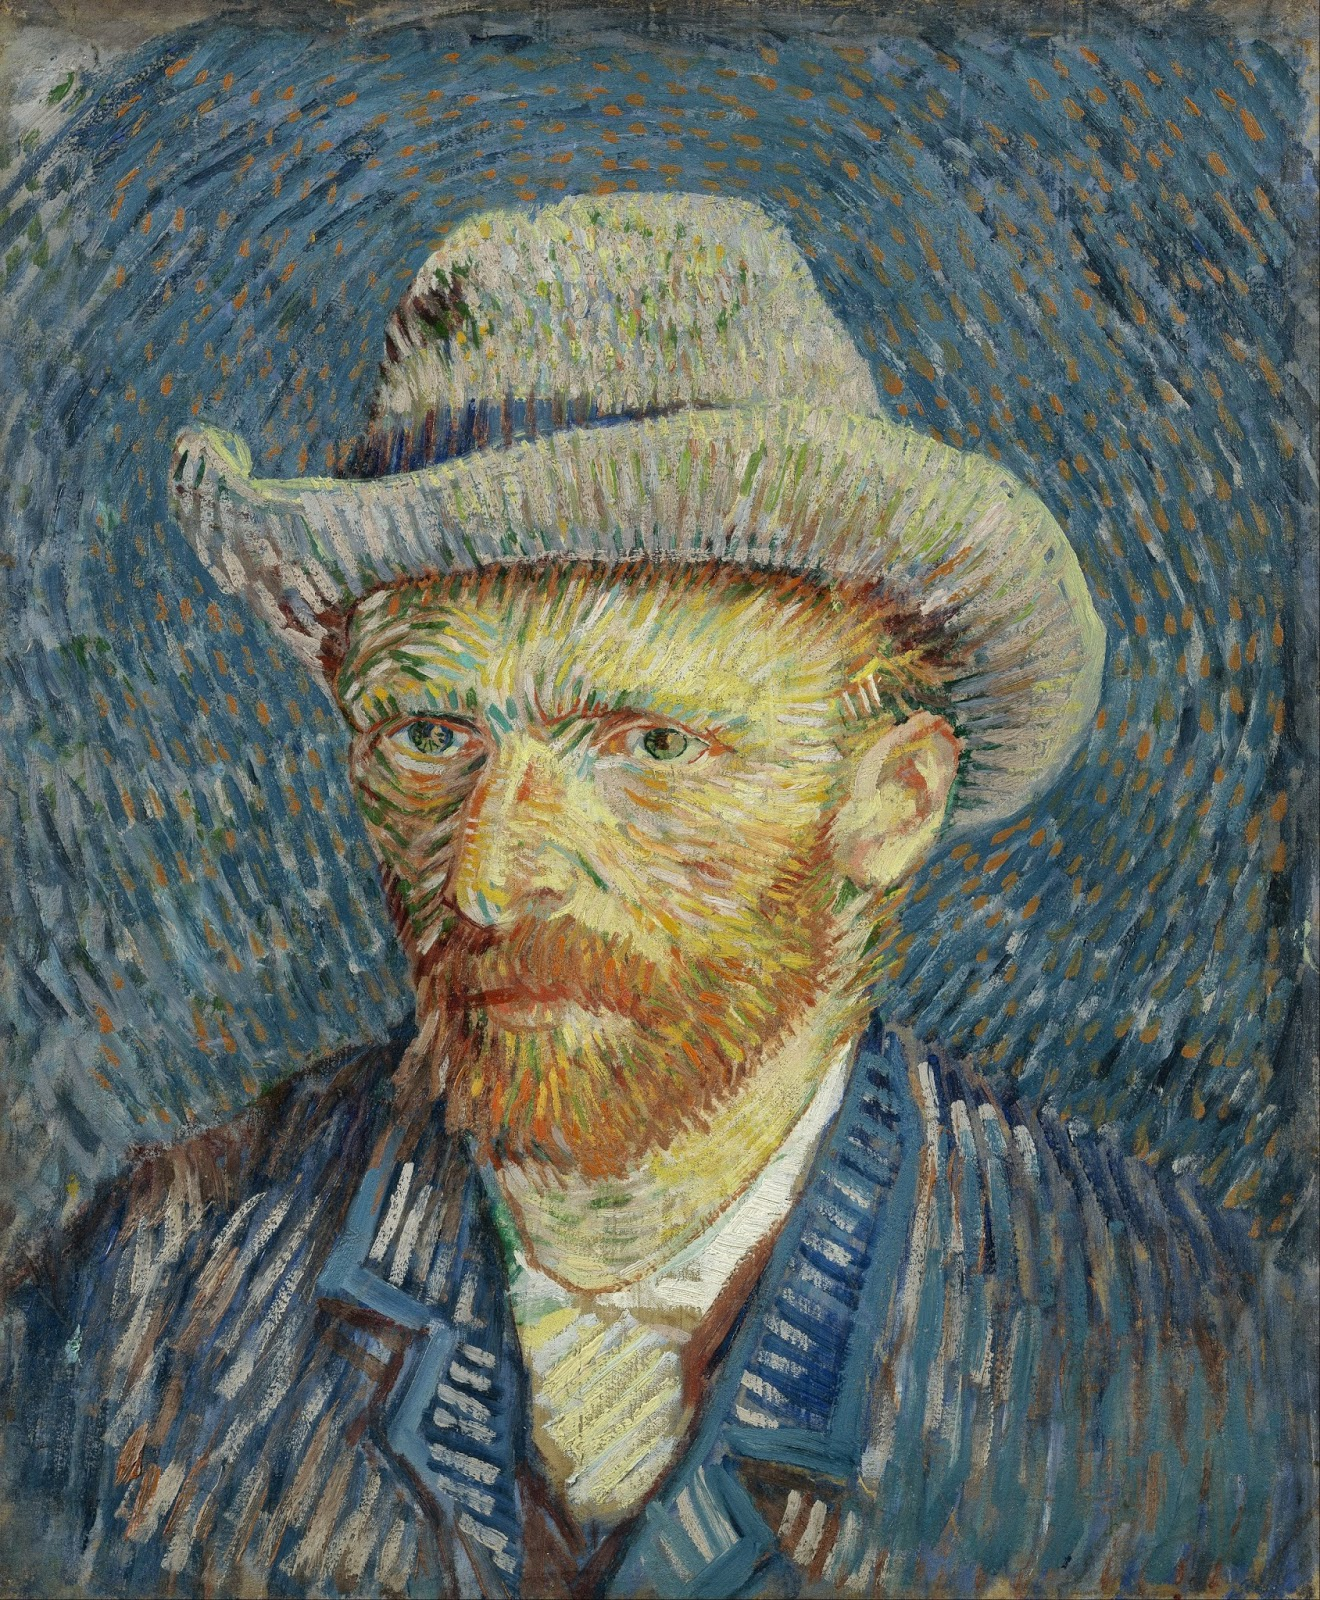 family-friendly Amsterdam - a portrait of Vincent Van Gogh